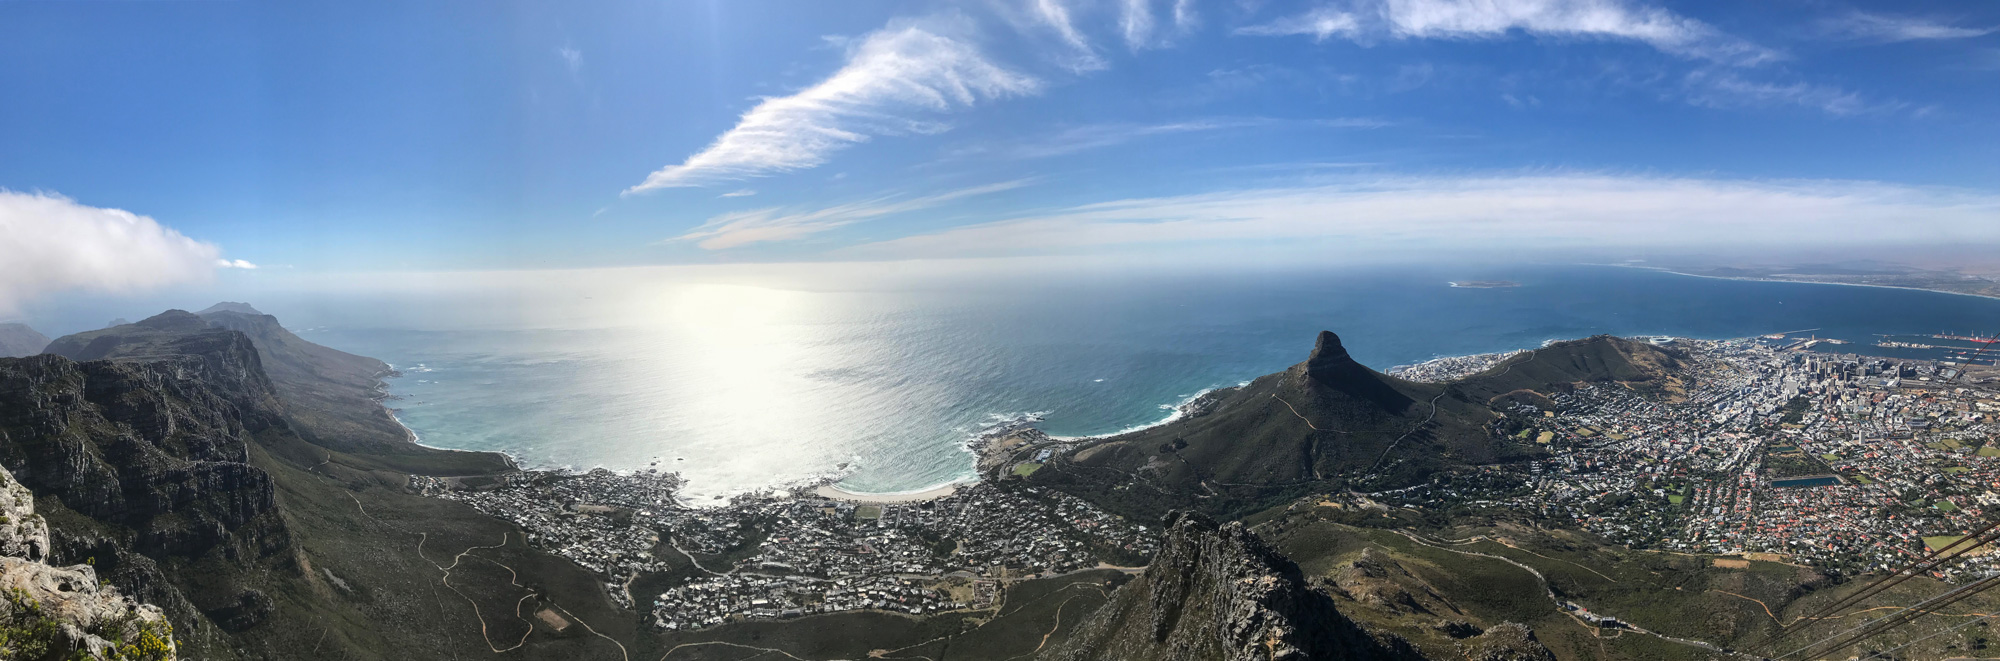 Shooting-Different_Cape-Town_Panorama-(1-di-9)